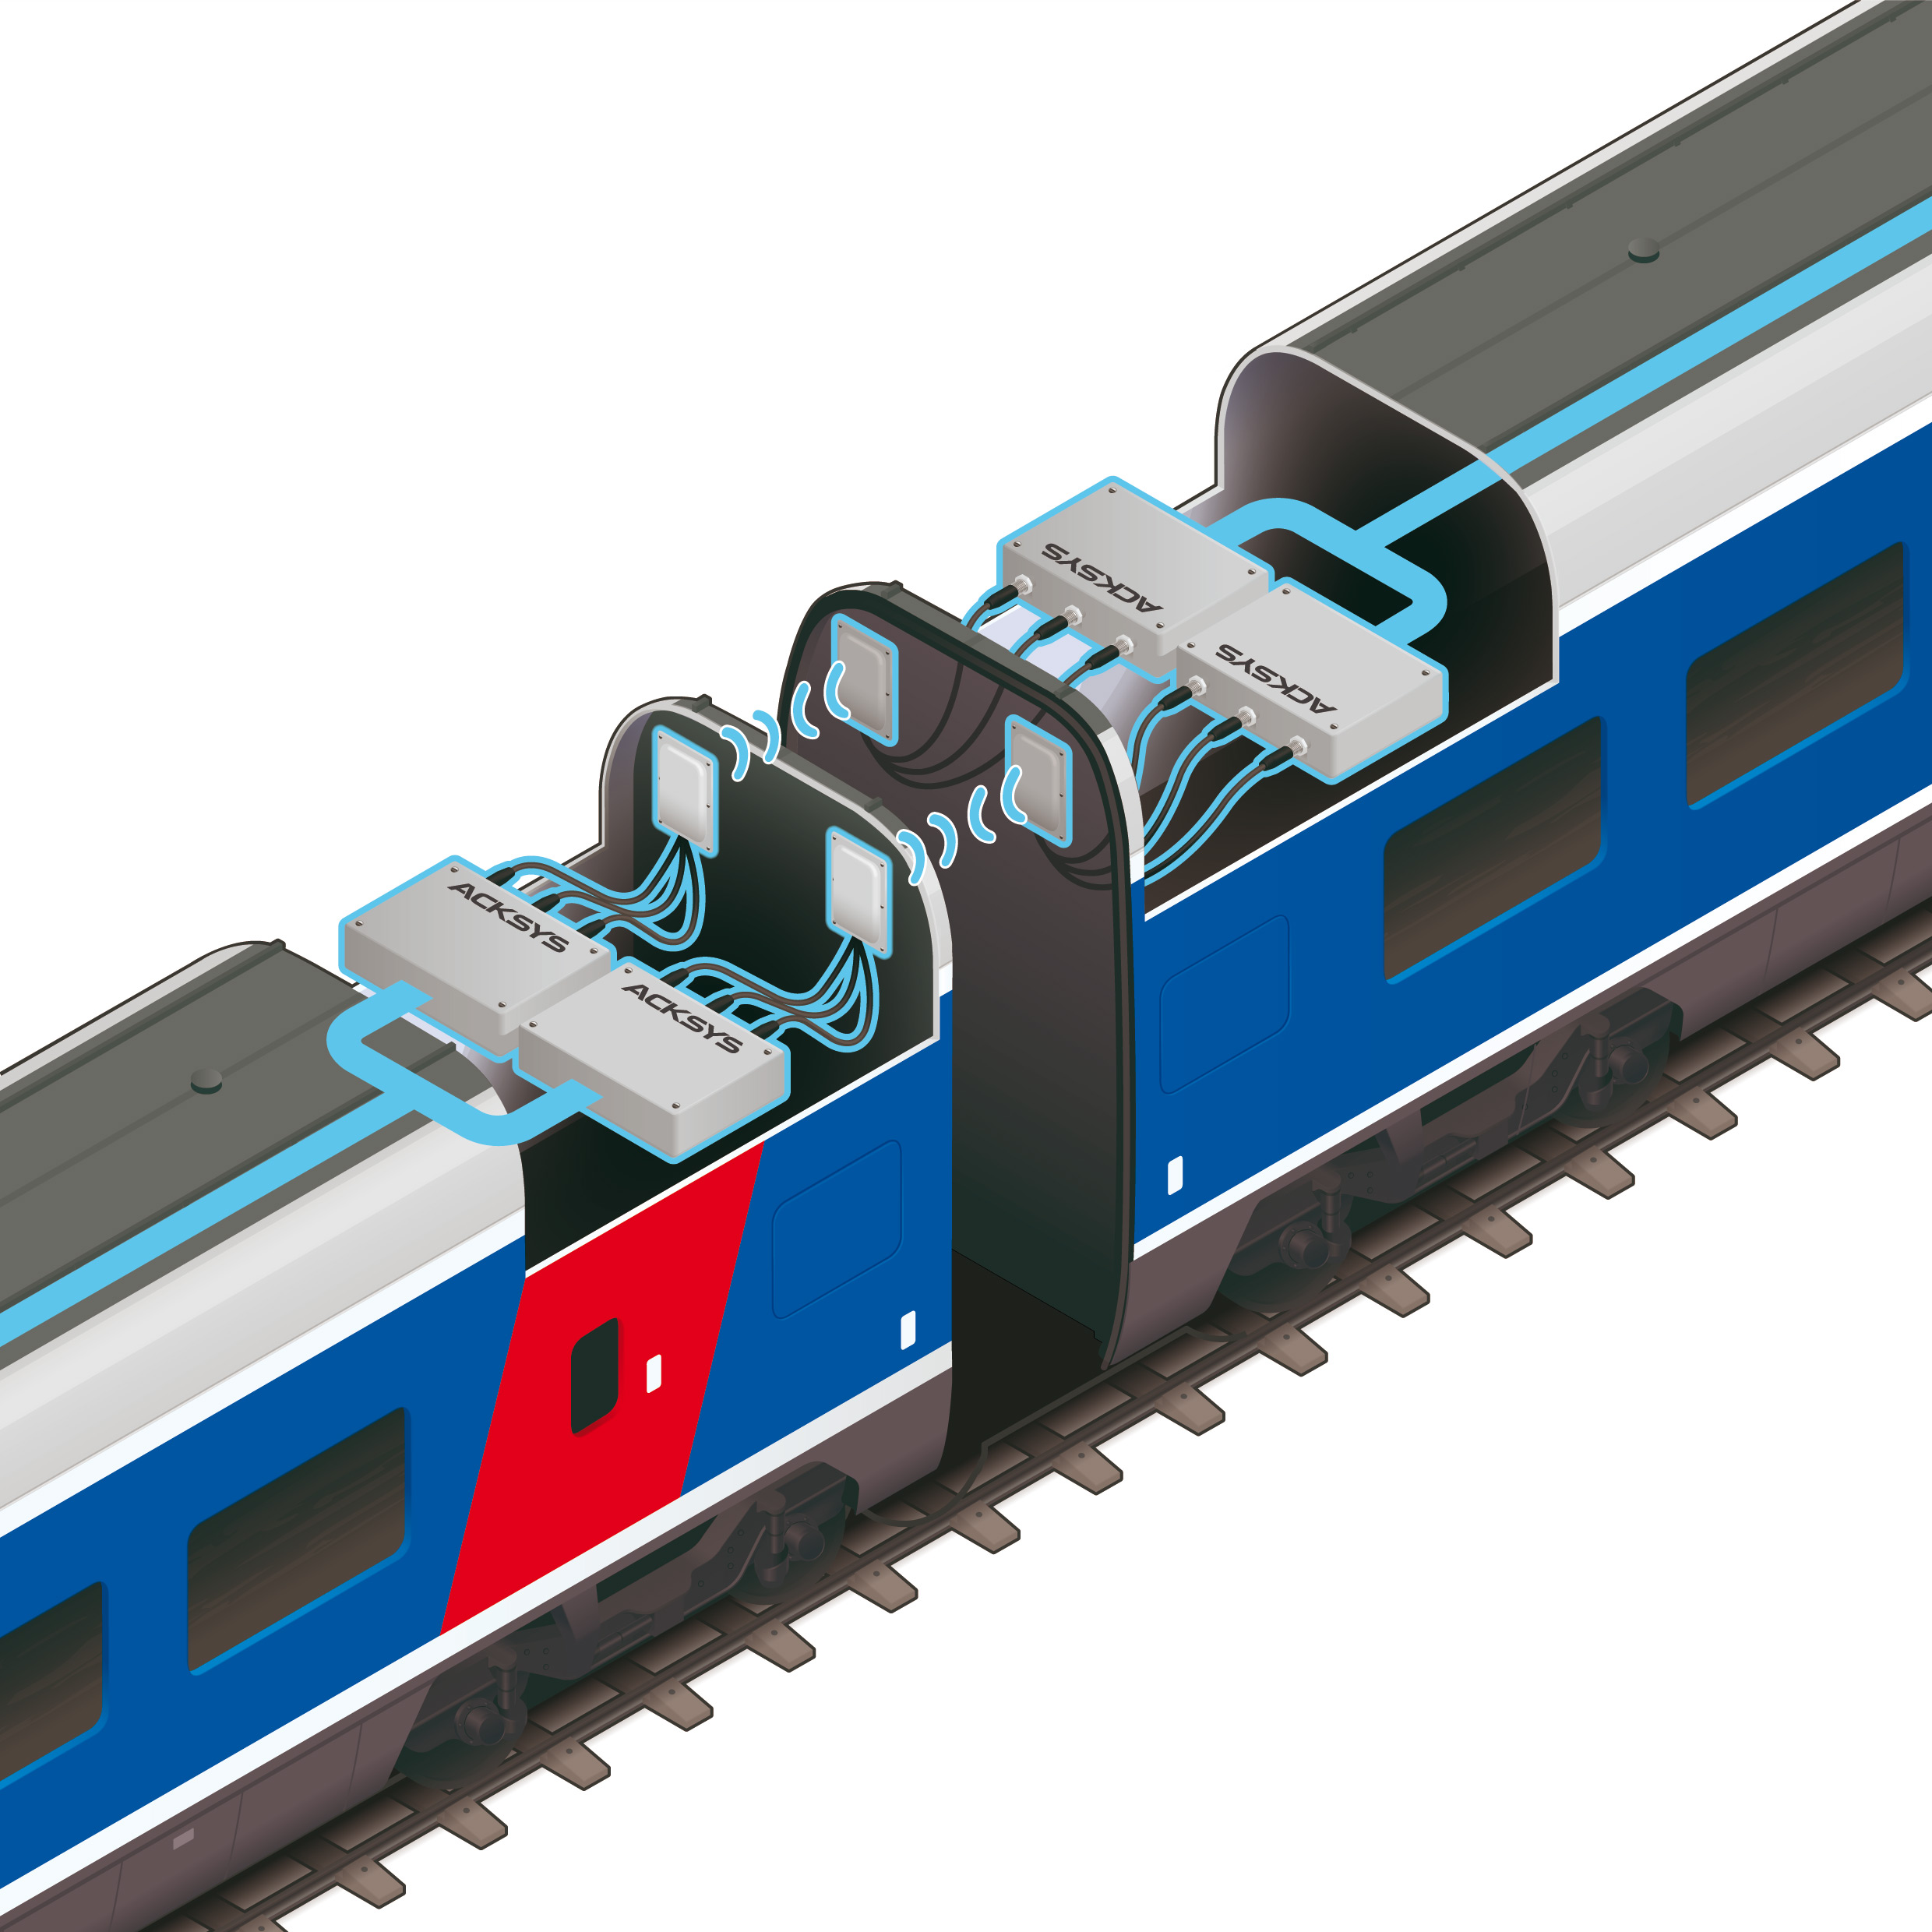 ACKSYS-Carriage-to-carriage-003